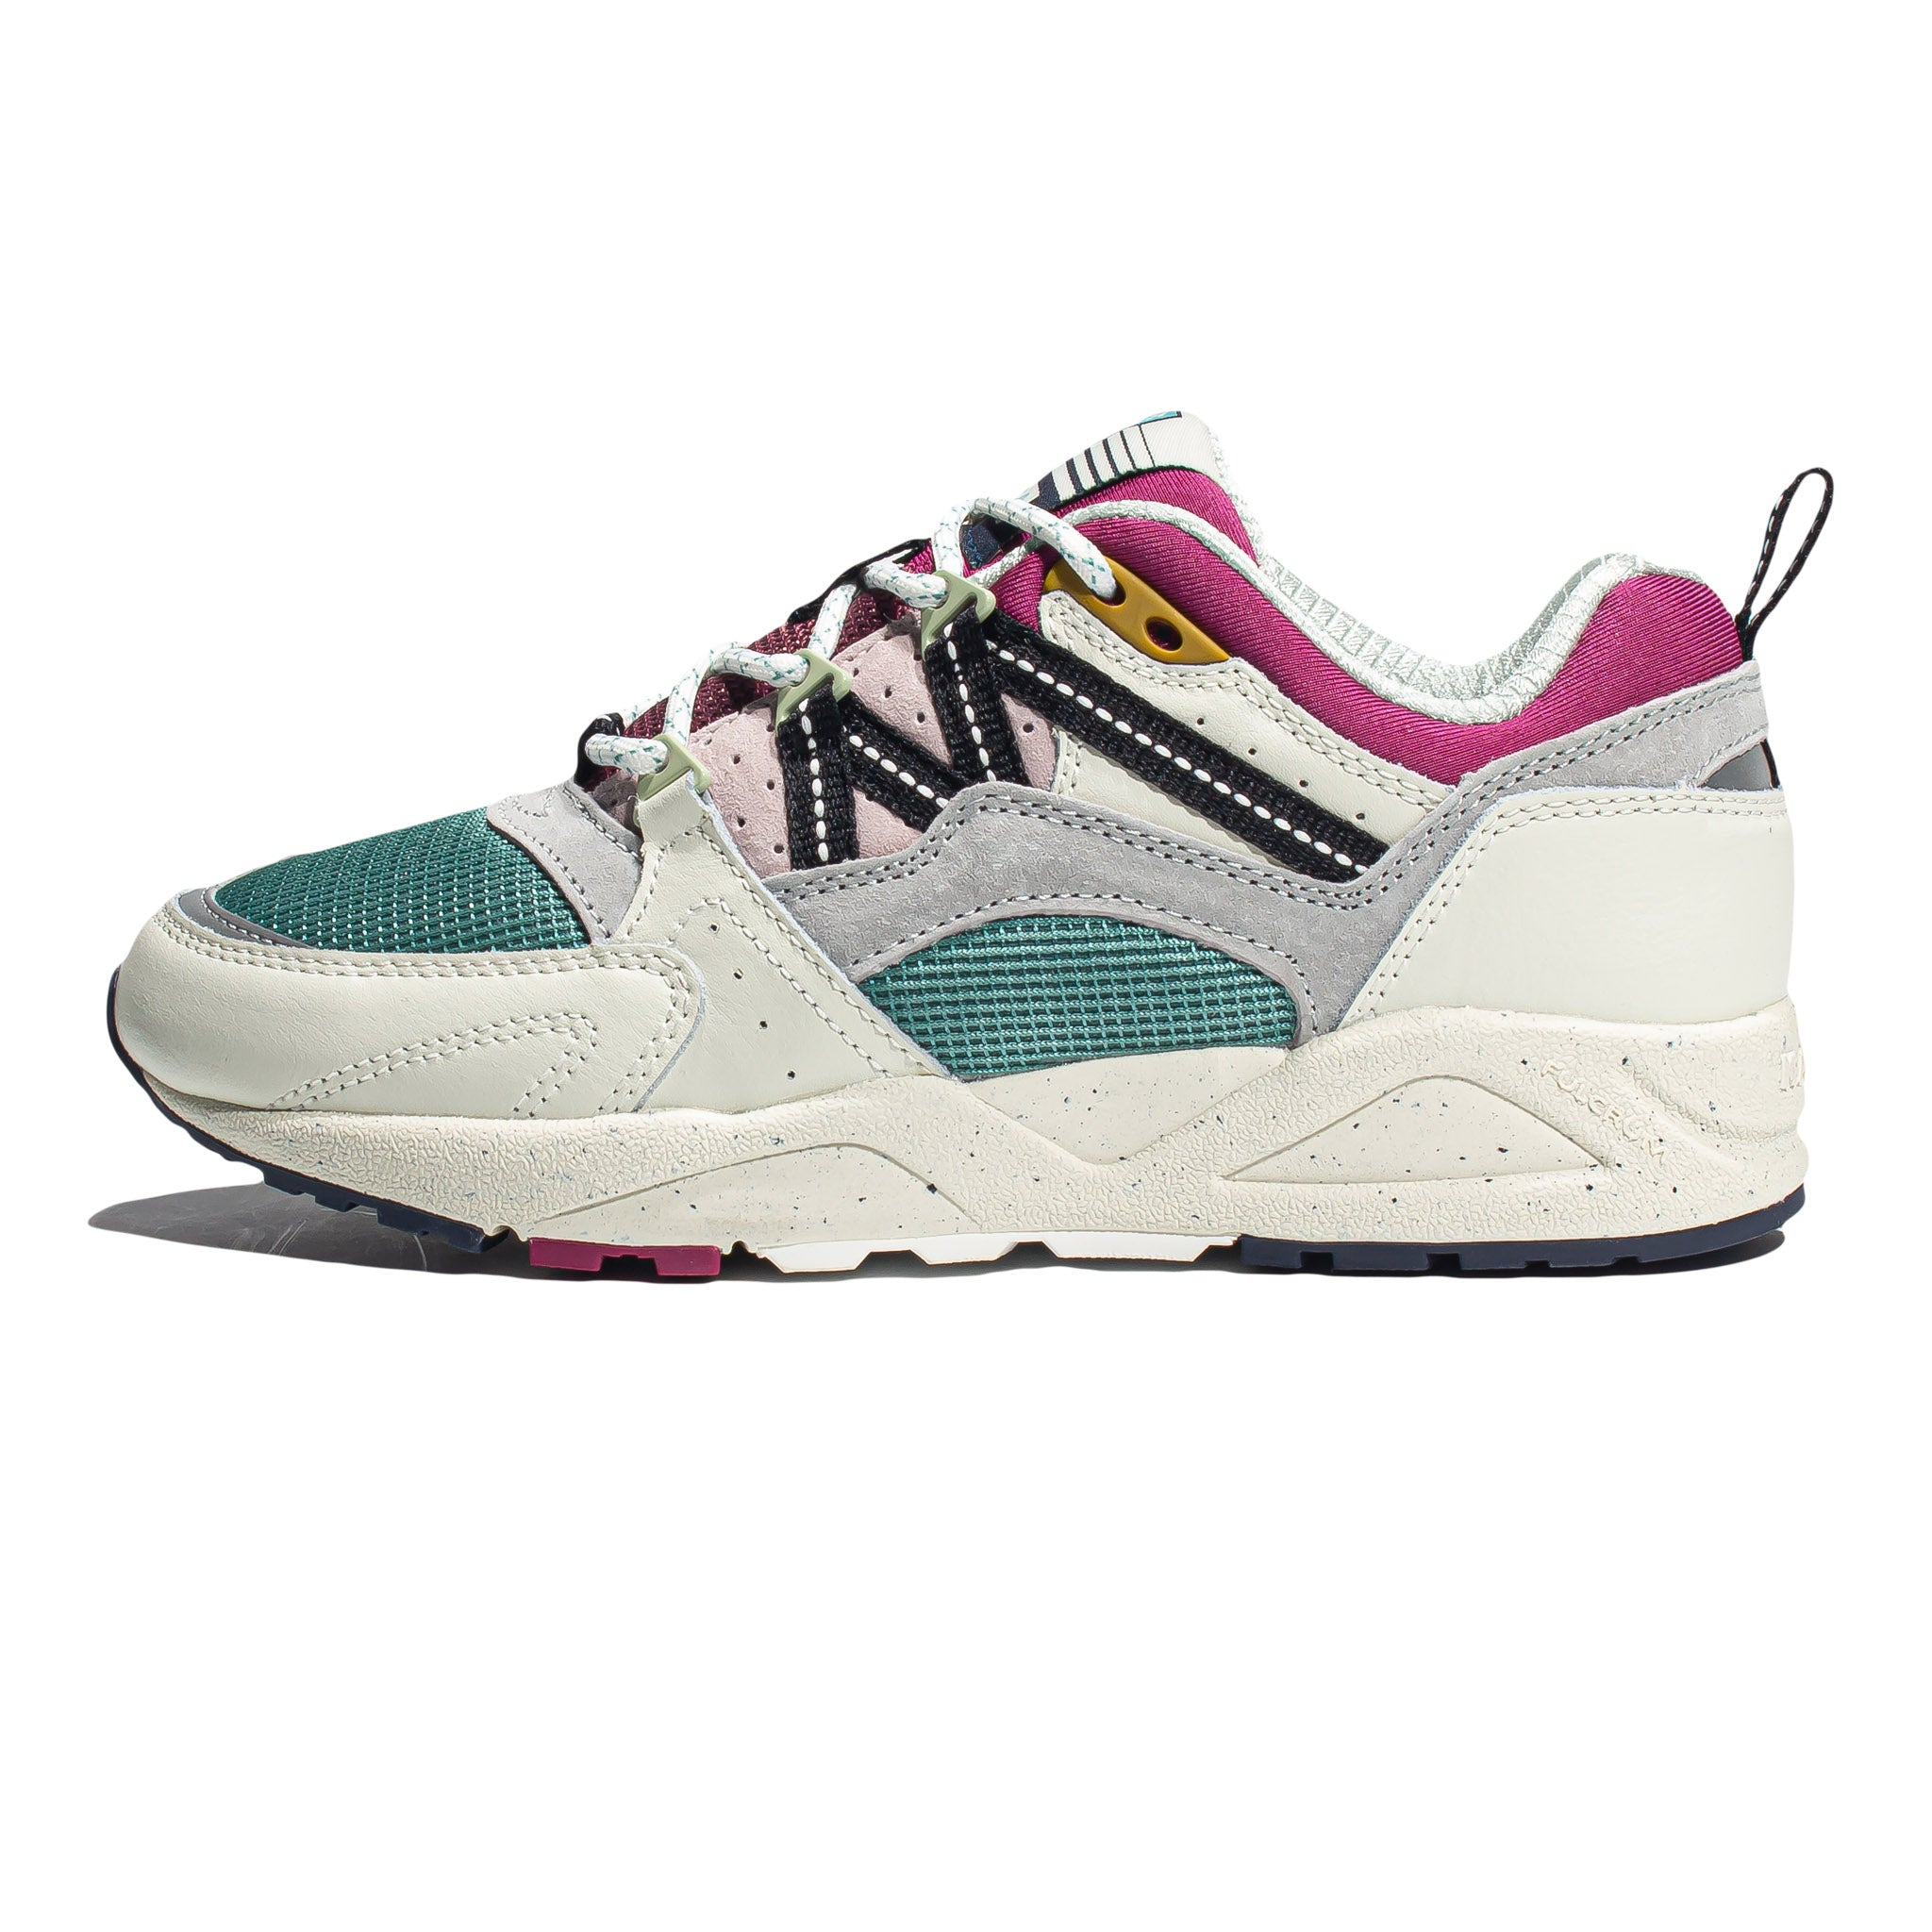 Karhu Fusion 2.0 'Colour of Mood Pack' Lily White